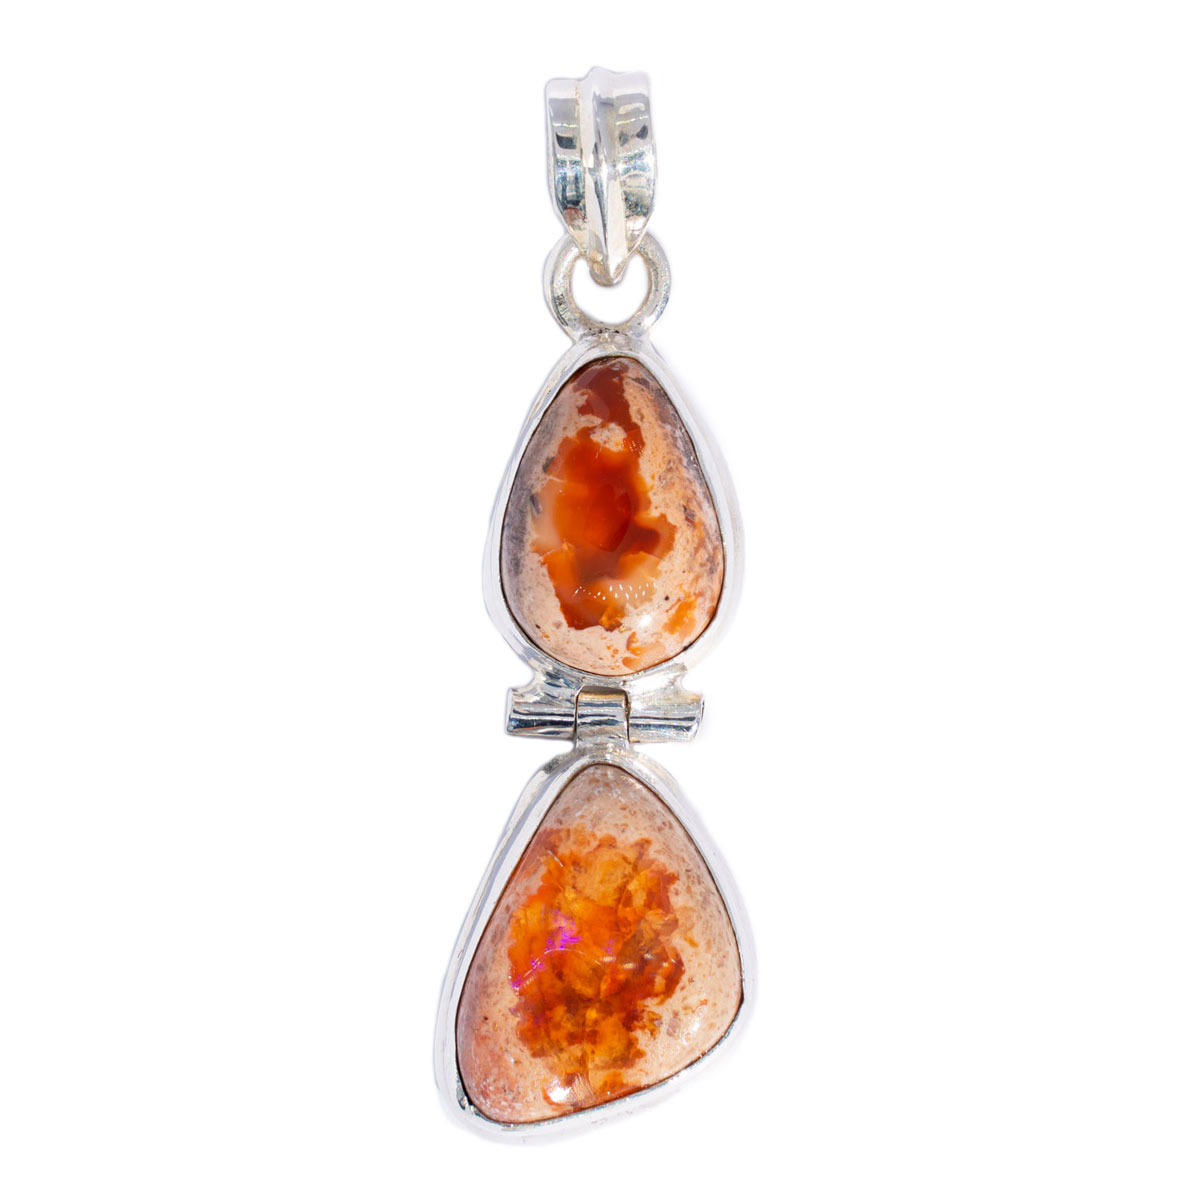 Sri Avinash Infused™ Mexican Fire Opal Pendant in Sterling Silver - Lightness & Joy Infusion